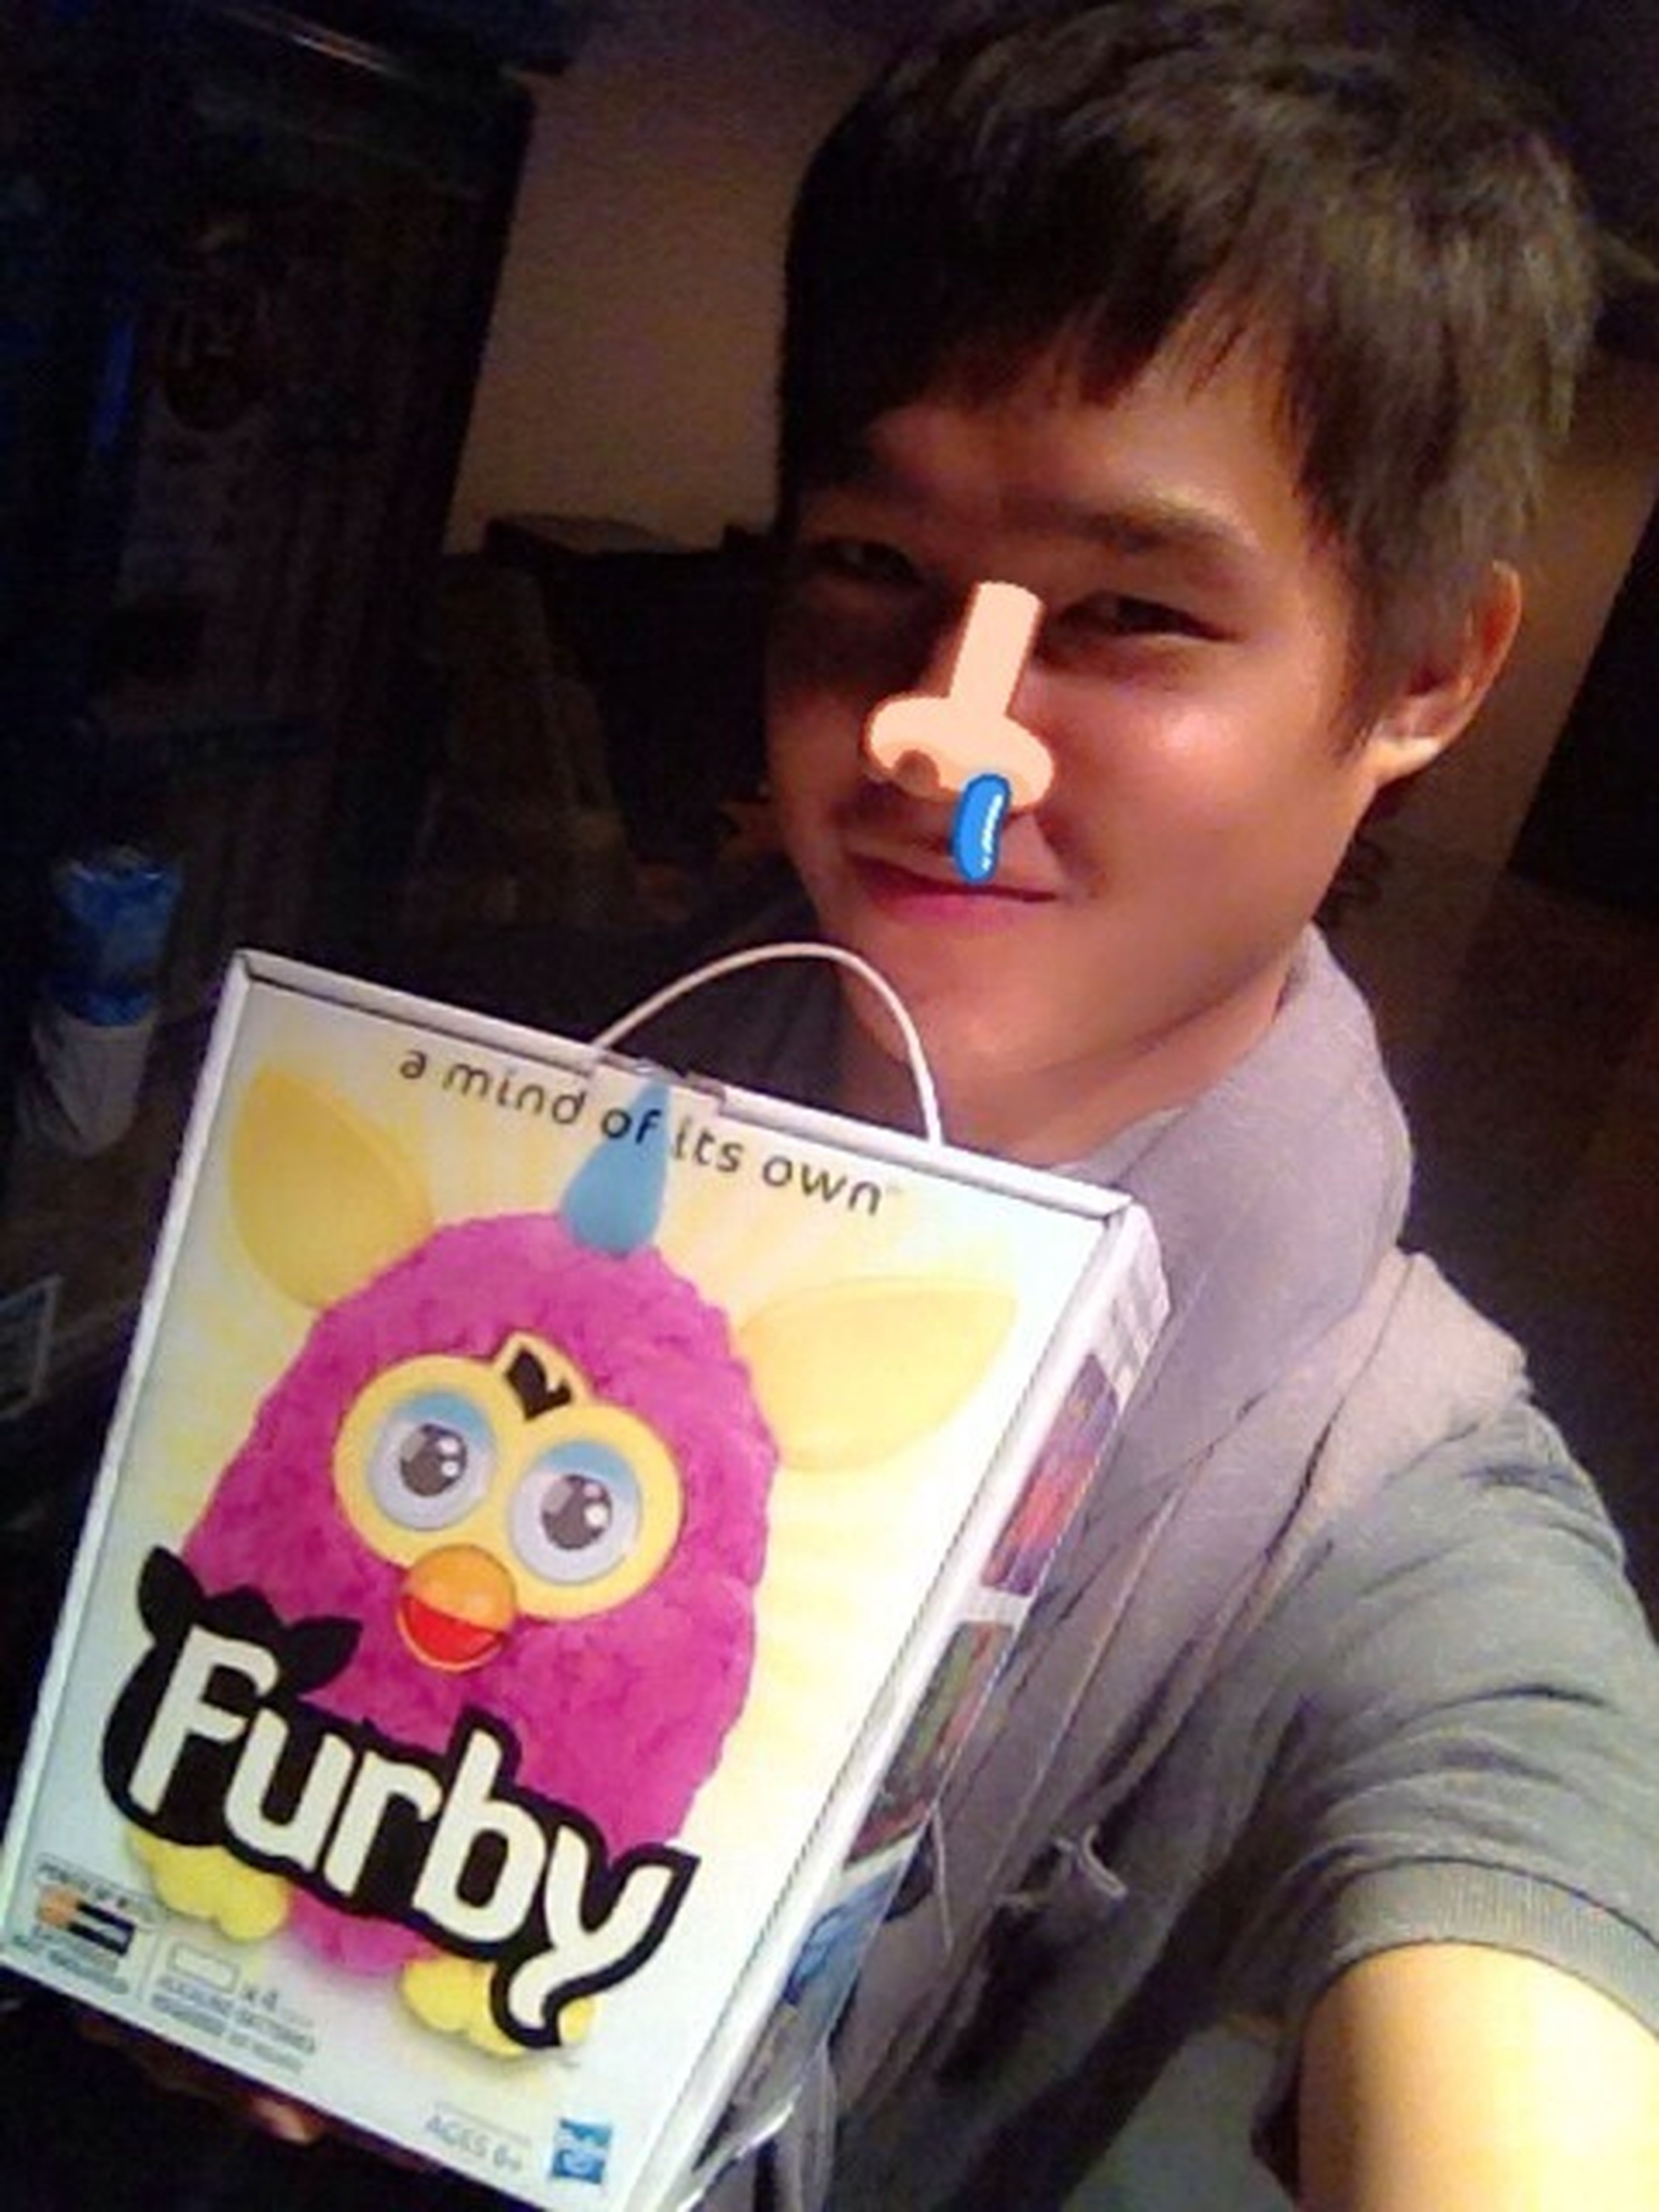 I Would Like To Tell EVERYBODY Furby Is Trendy Wrong, And Im Not Really A Fan Of Furby Talking To IPhone Apps. Seems Weird. Yak! #furby #popularity In Thai Peeps